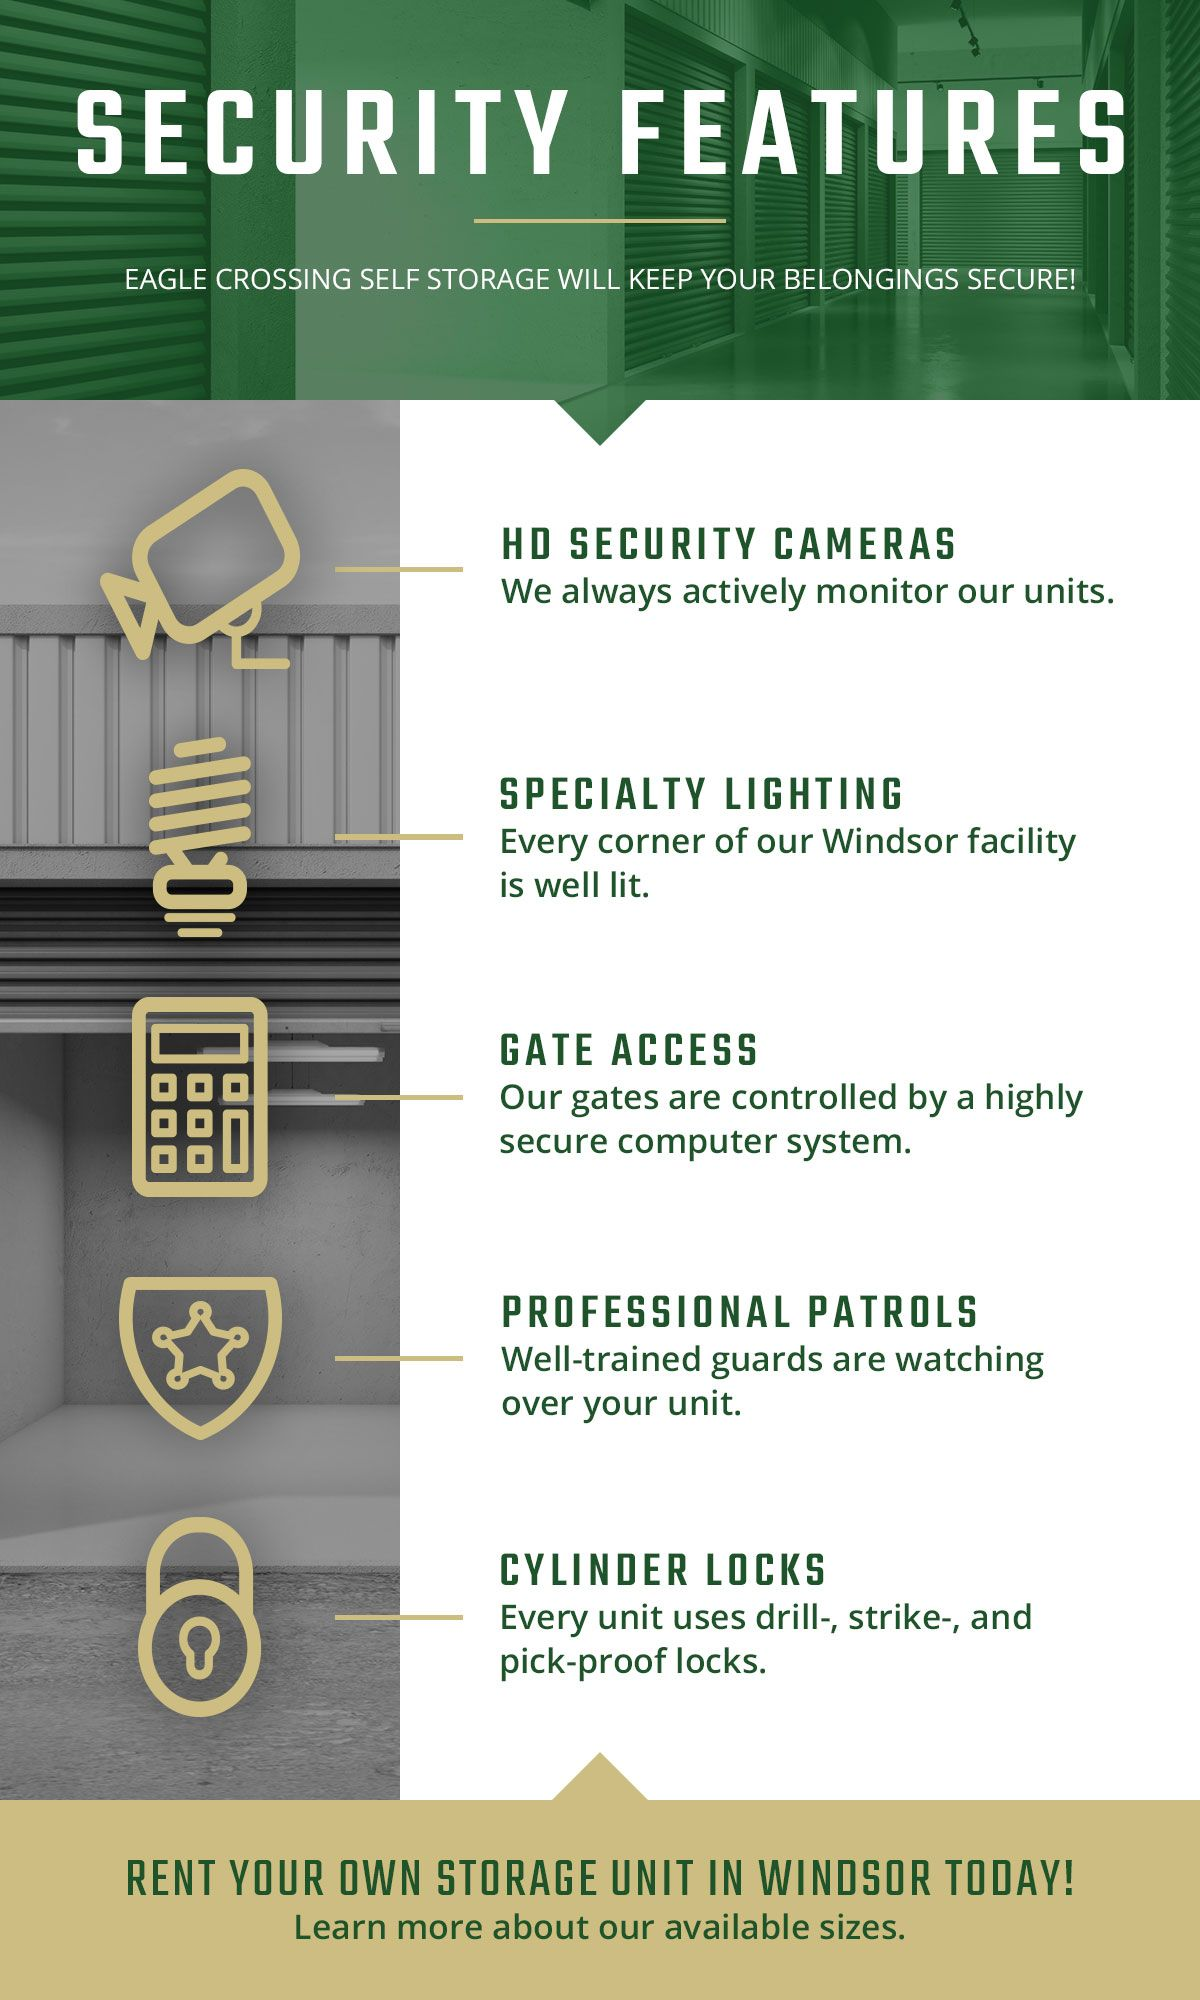 Security Features Infographic